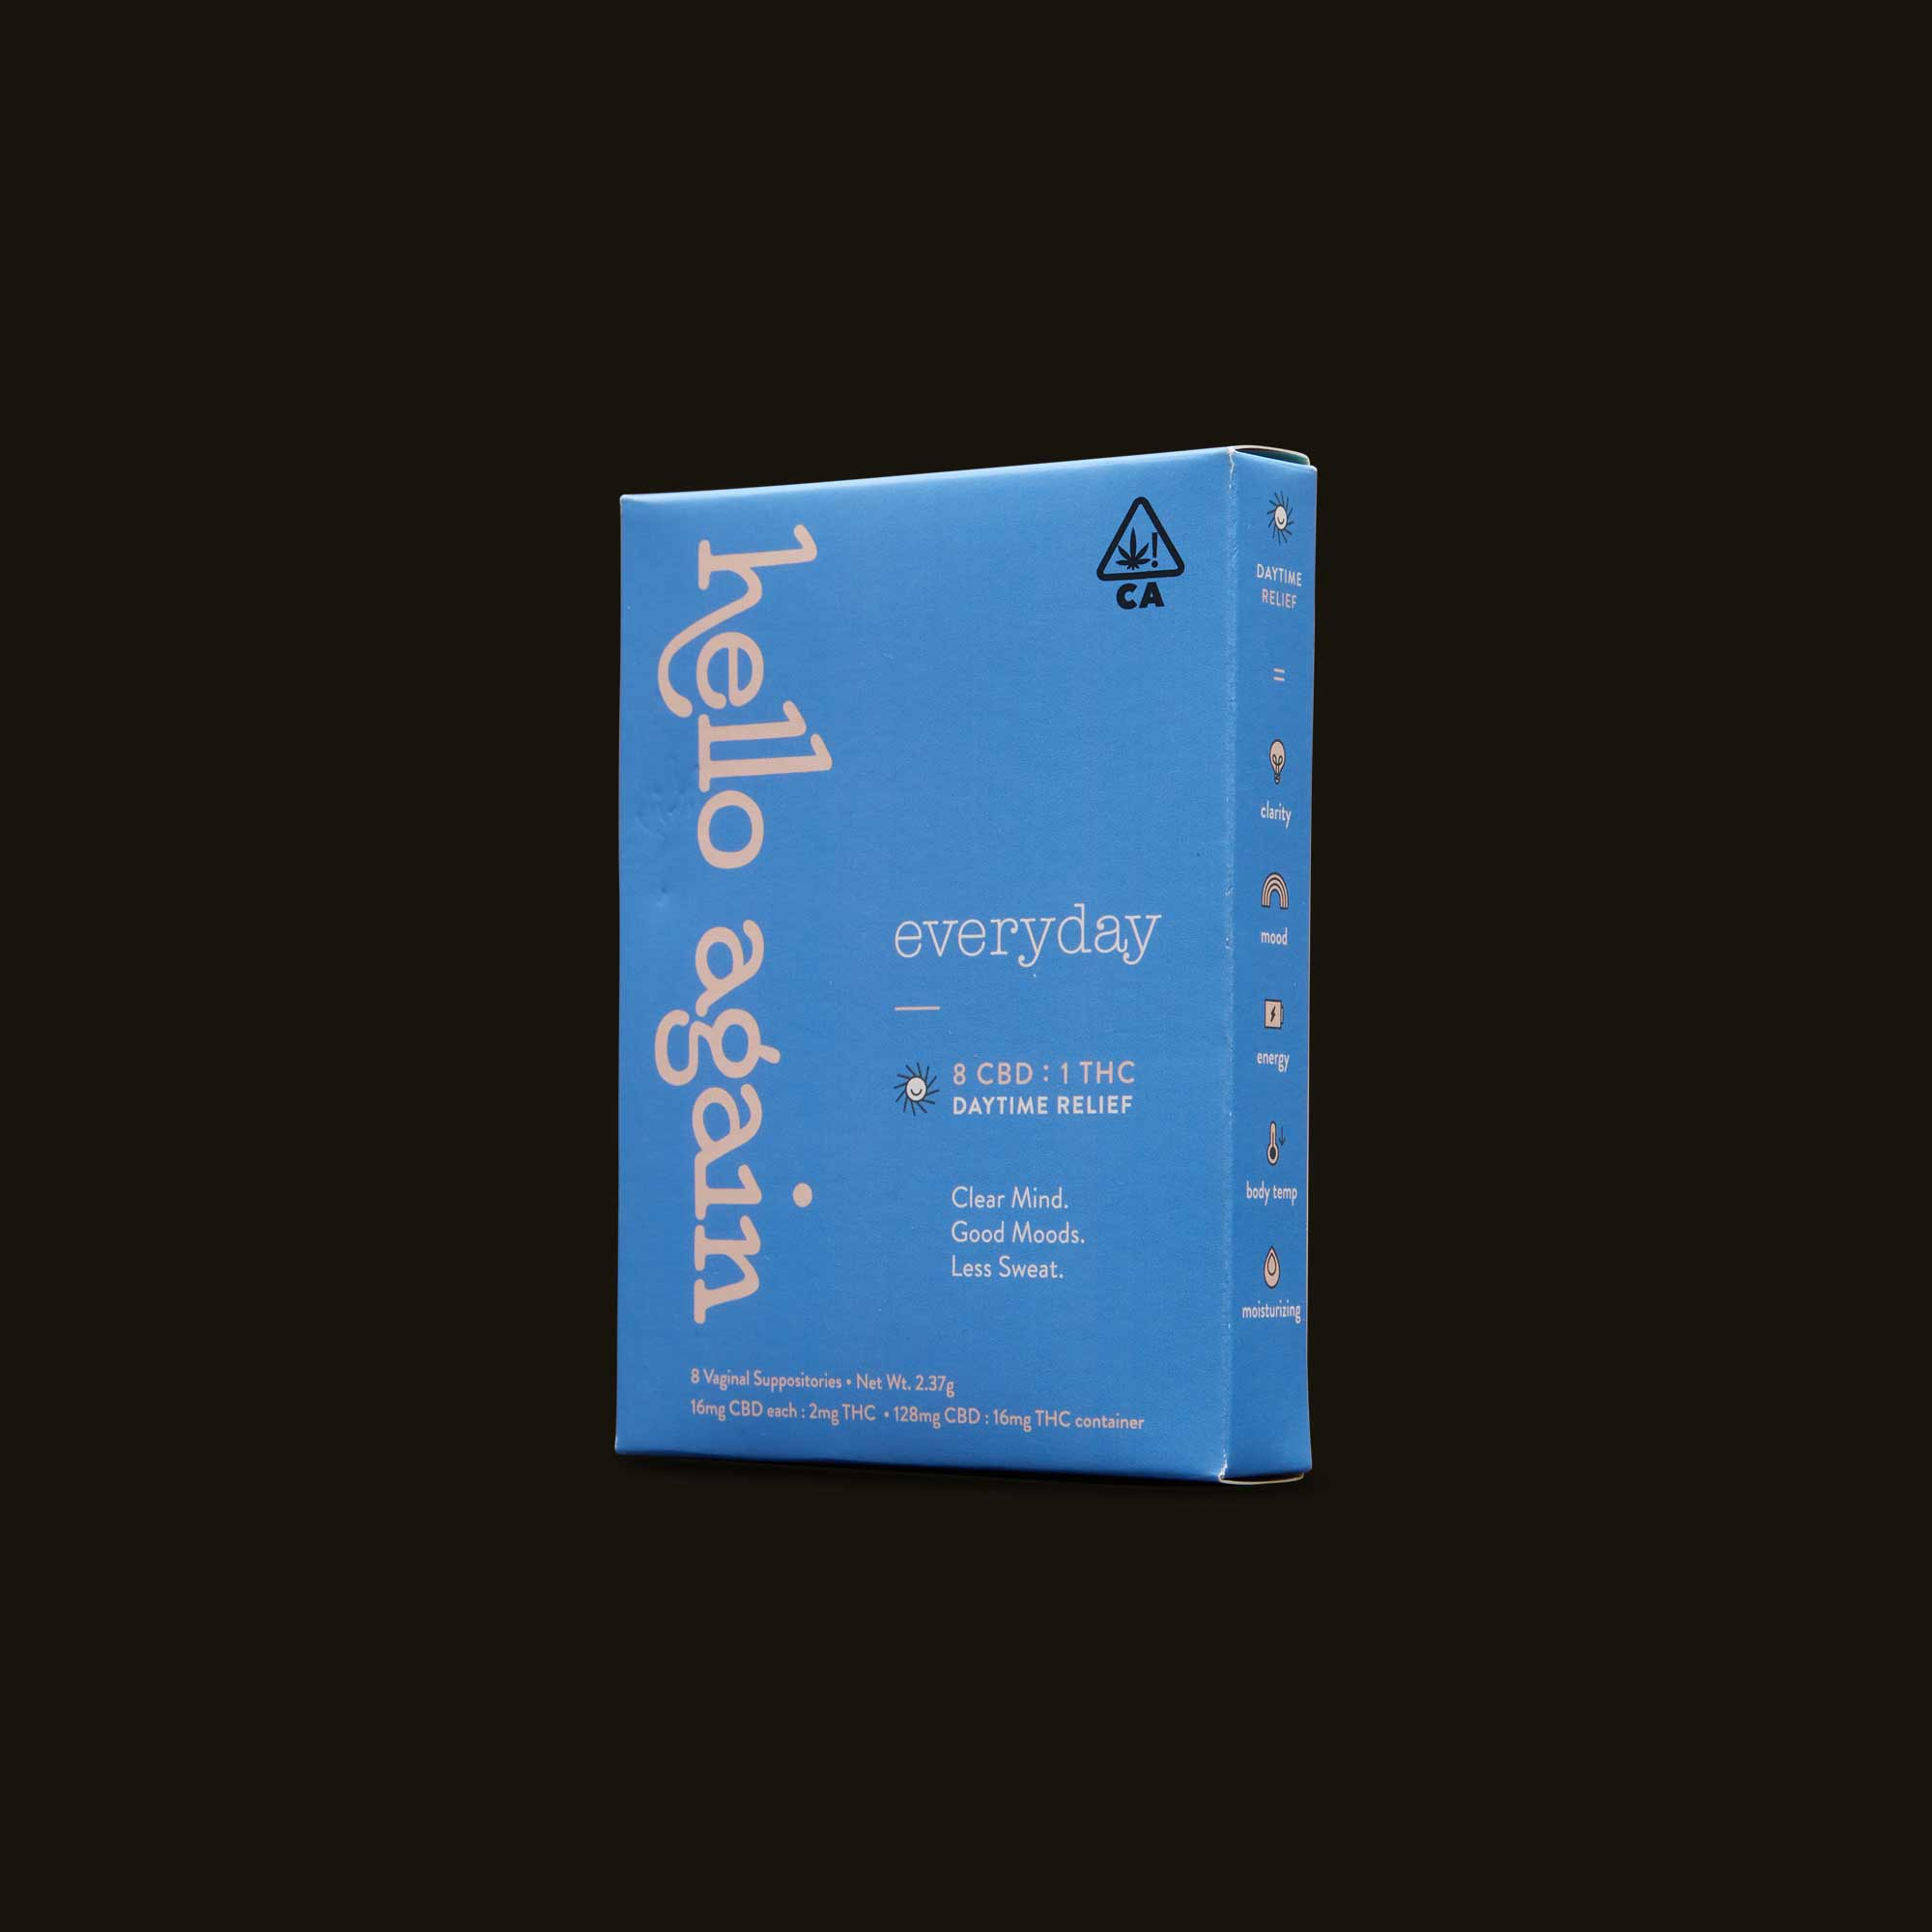 Everyday - 8 vaginal suppositories